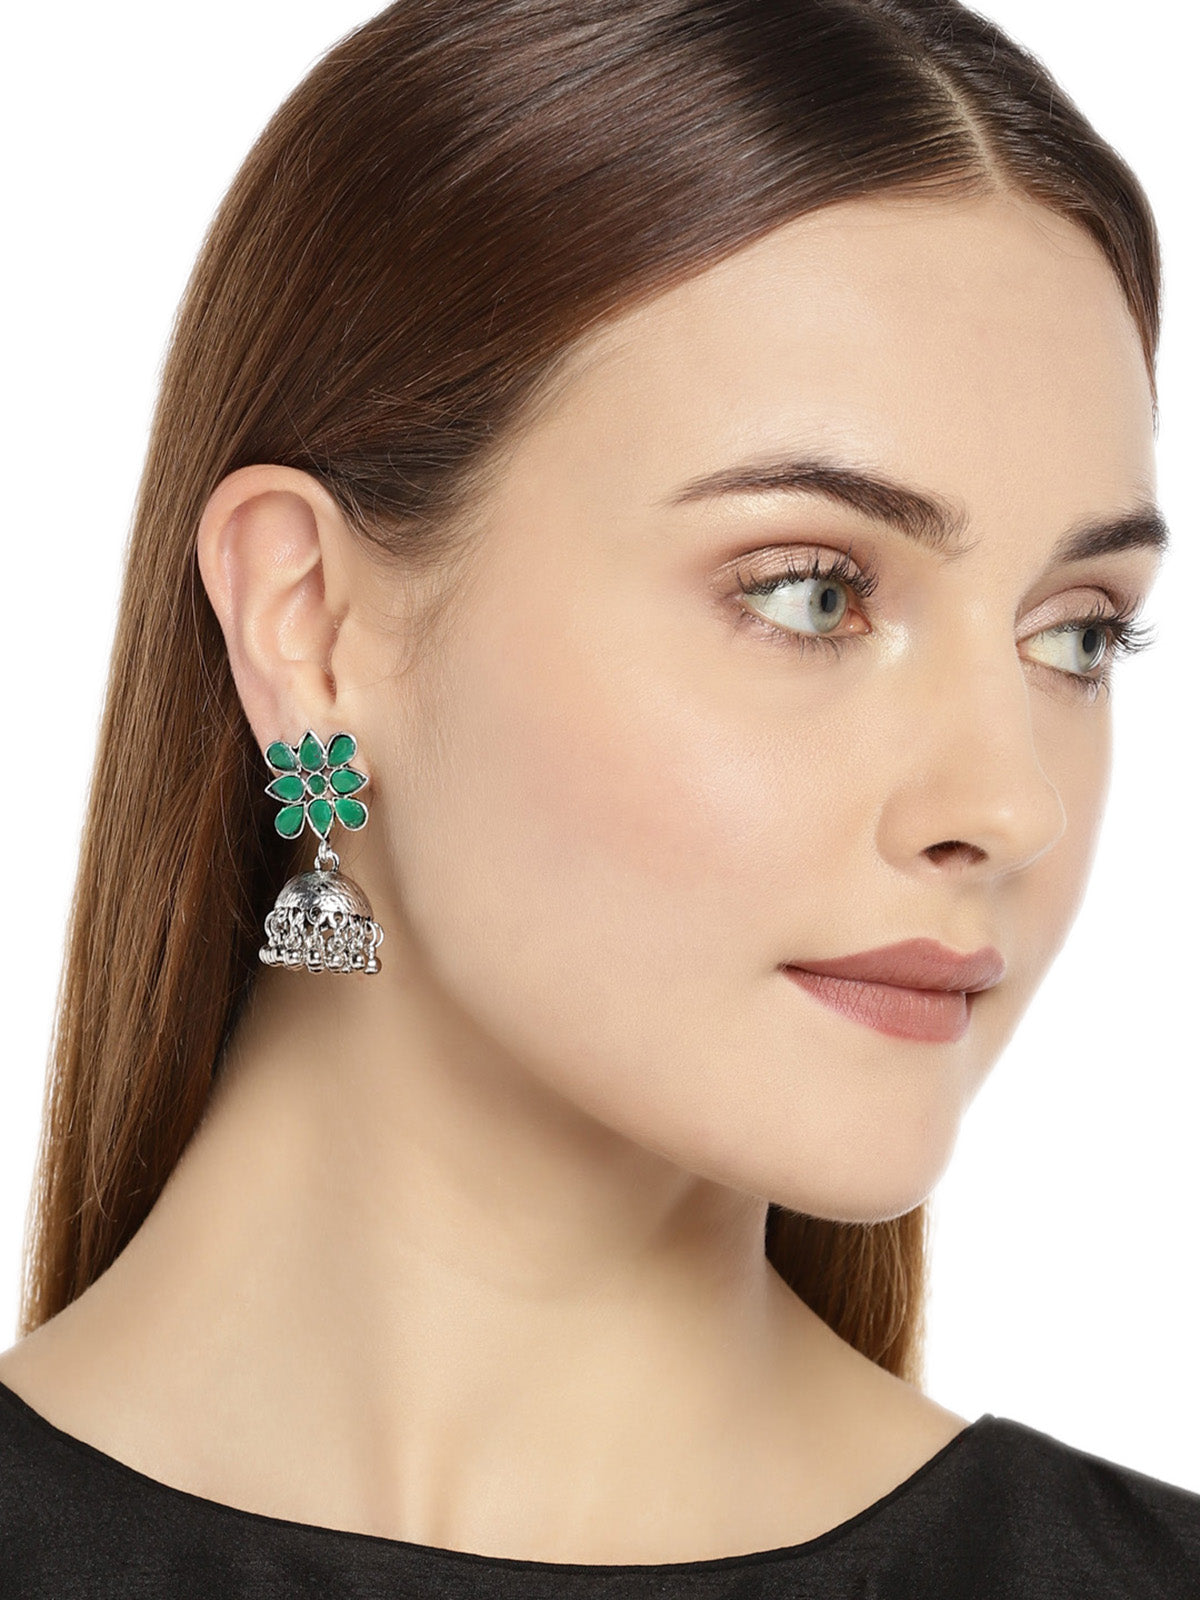 Combo Of 2 Zaveri Pearls Antique Silver Tone Jhumki Earring-ZAVERI PEARLS1-Earring